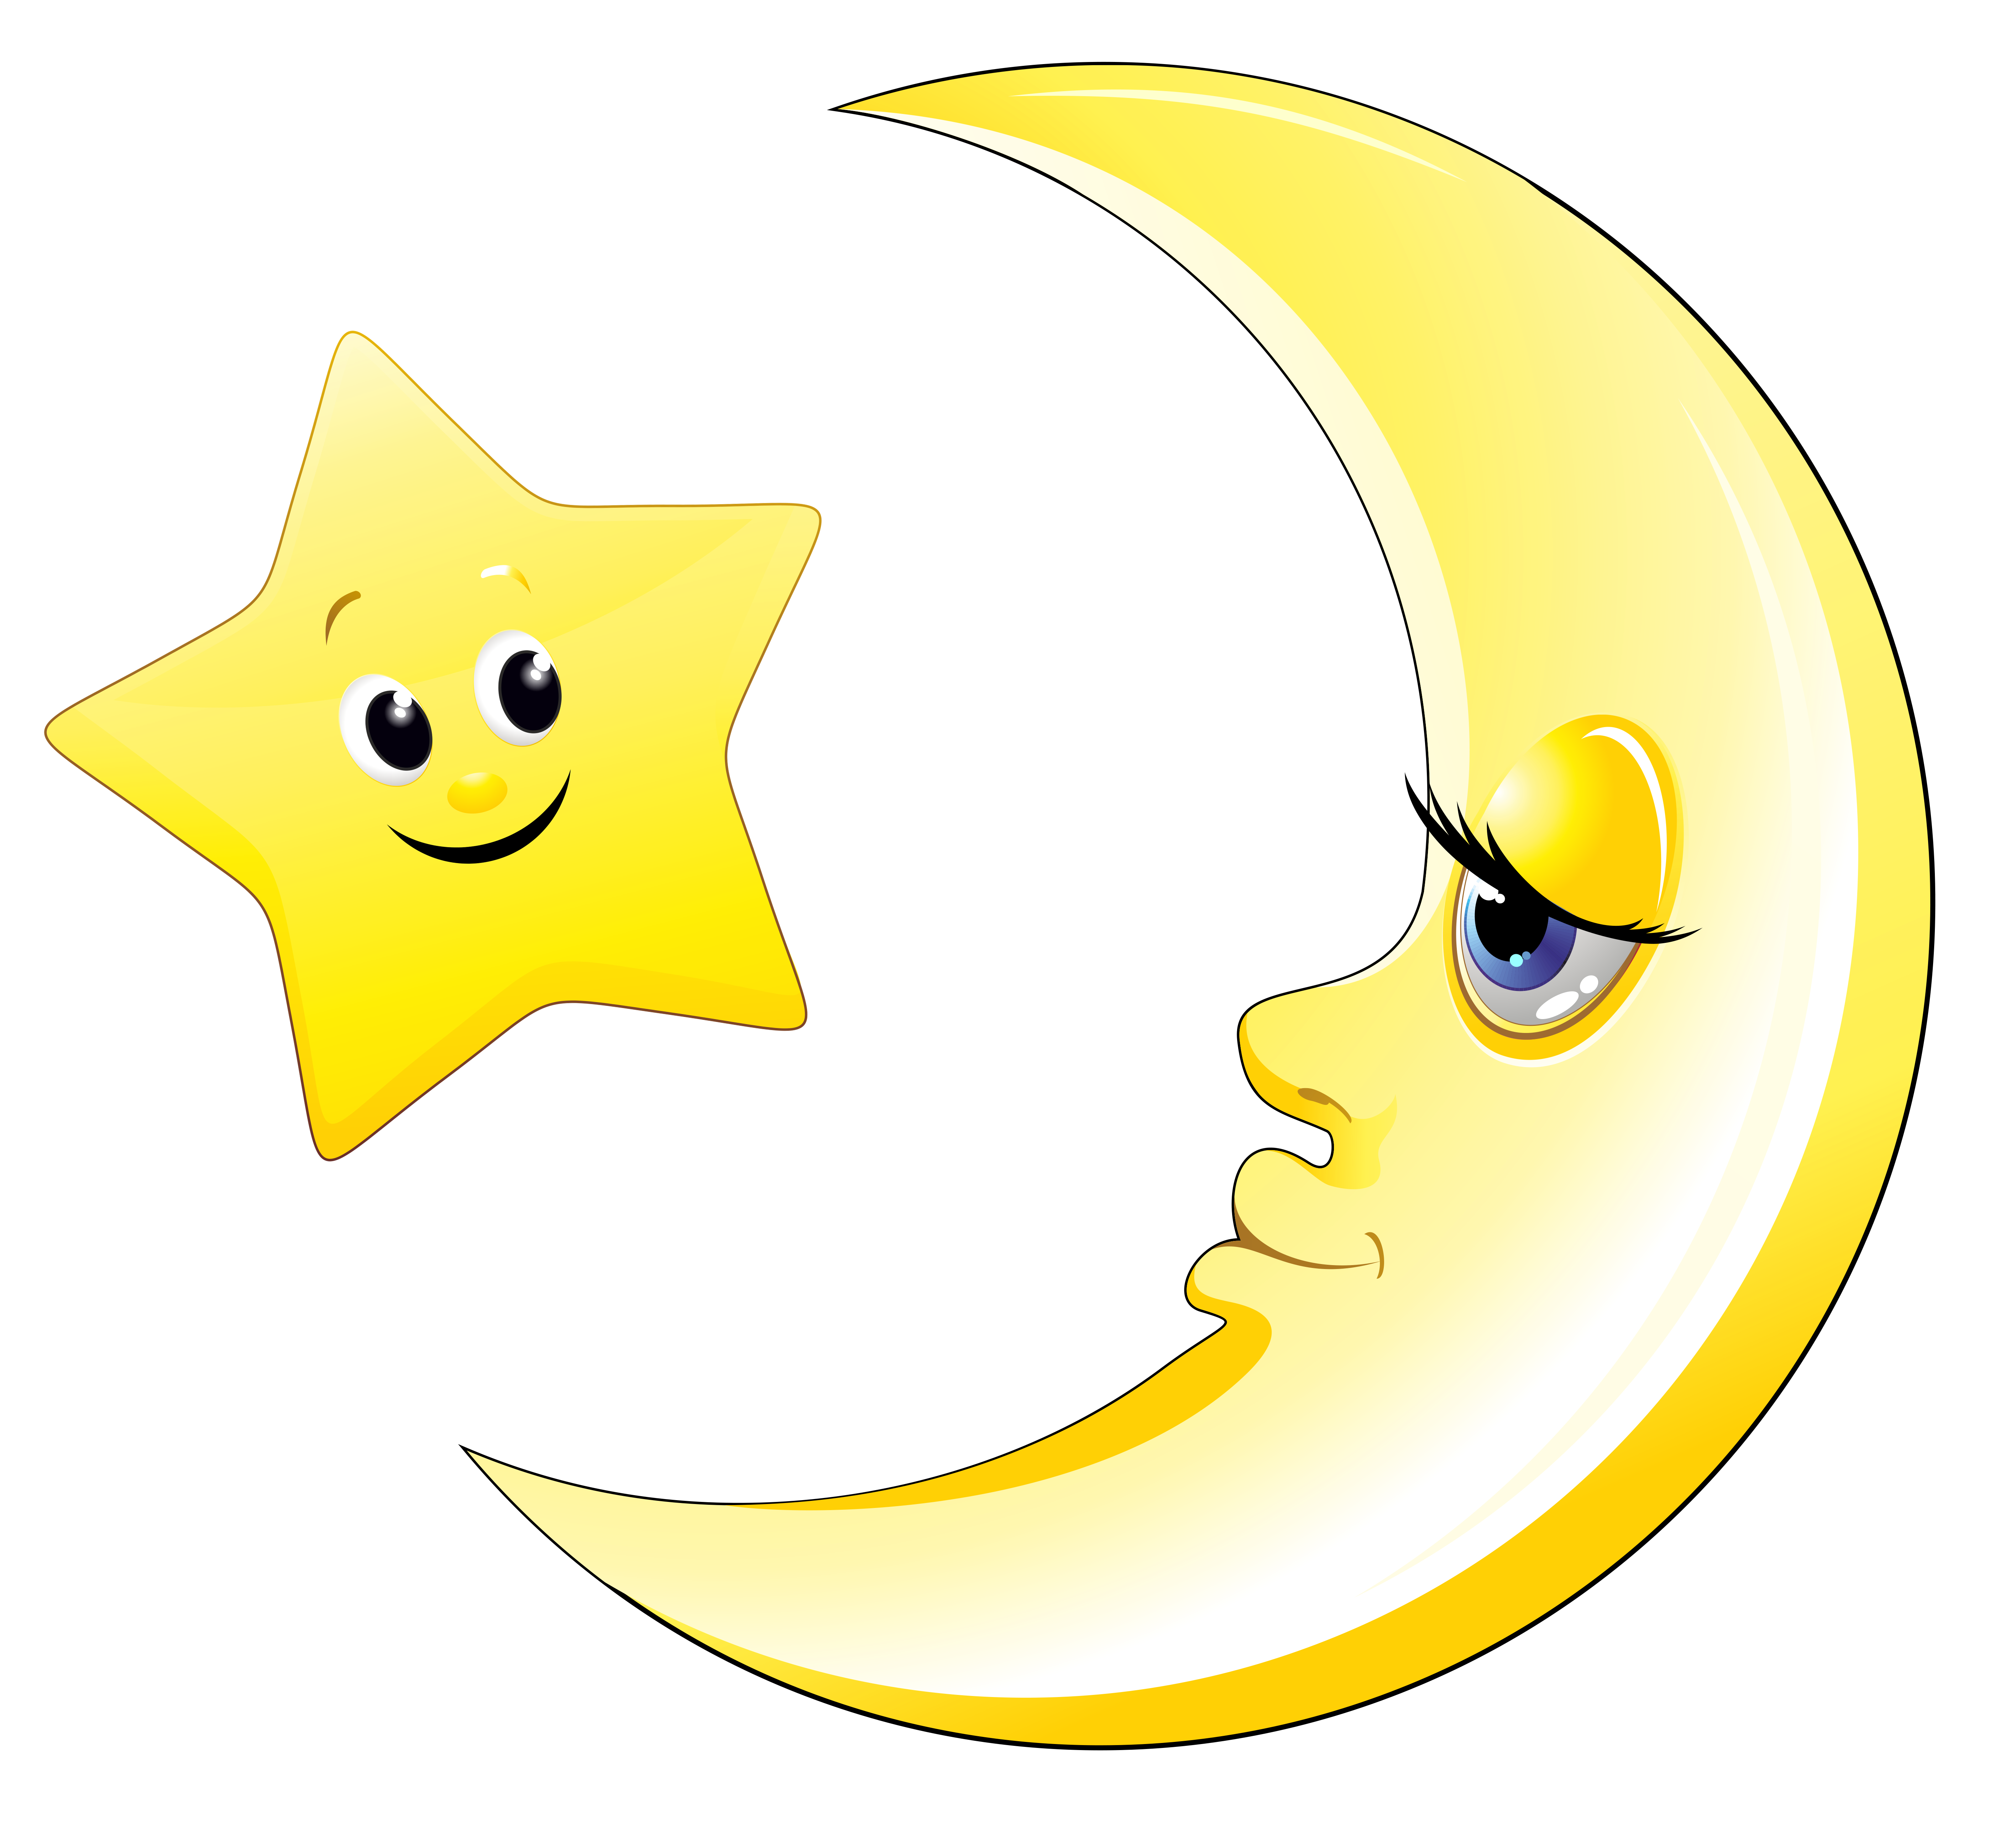 Transparent Cute Moon and Star Clipart Picture